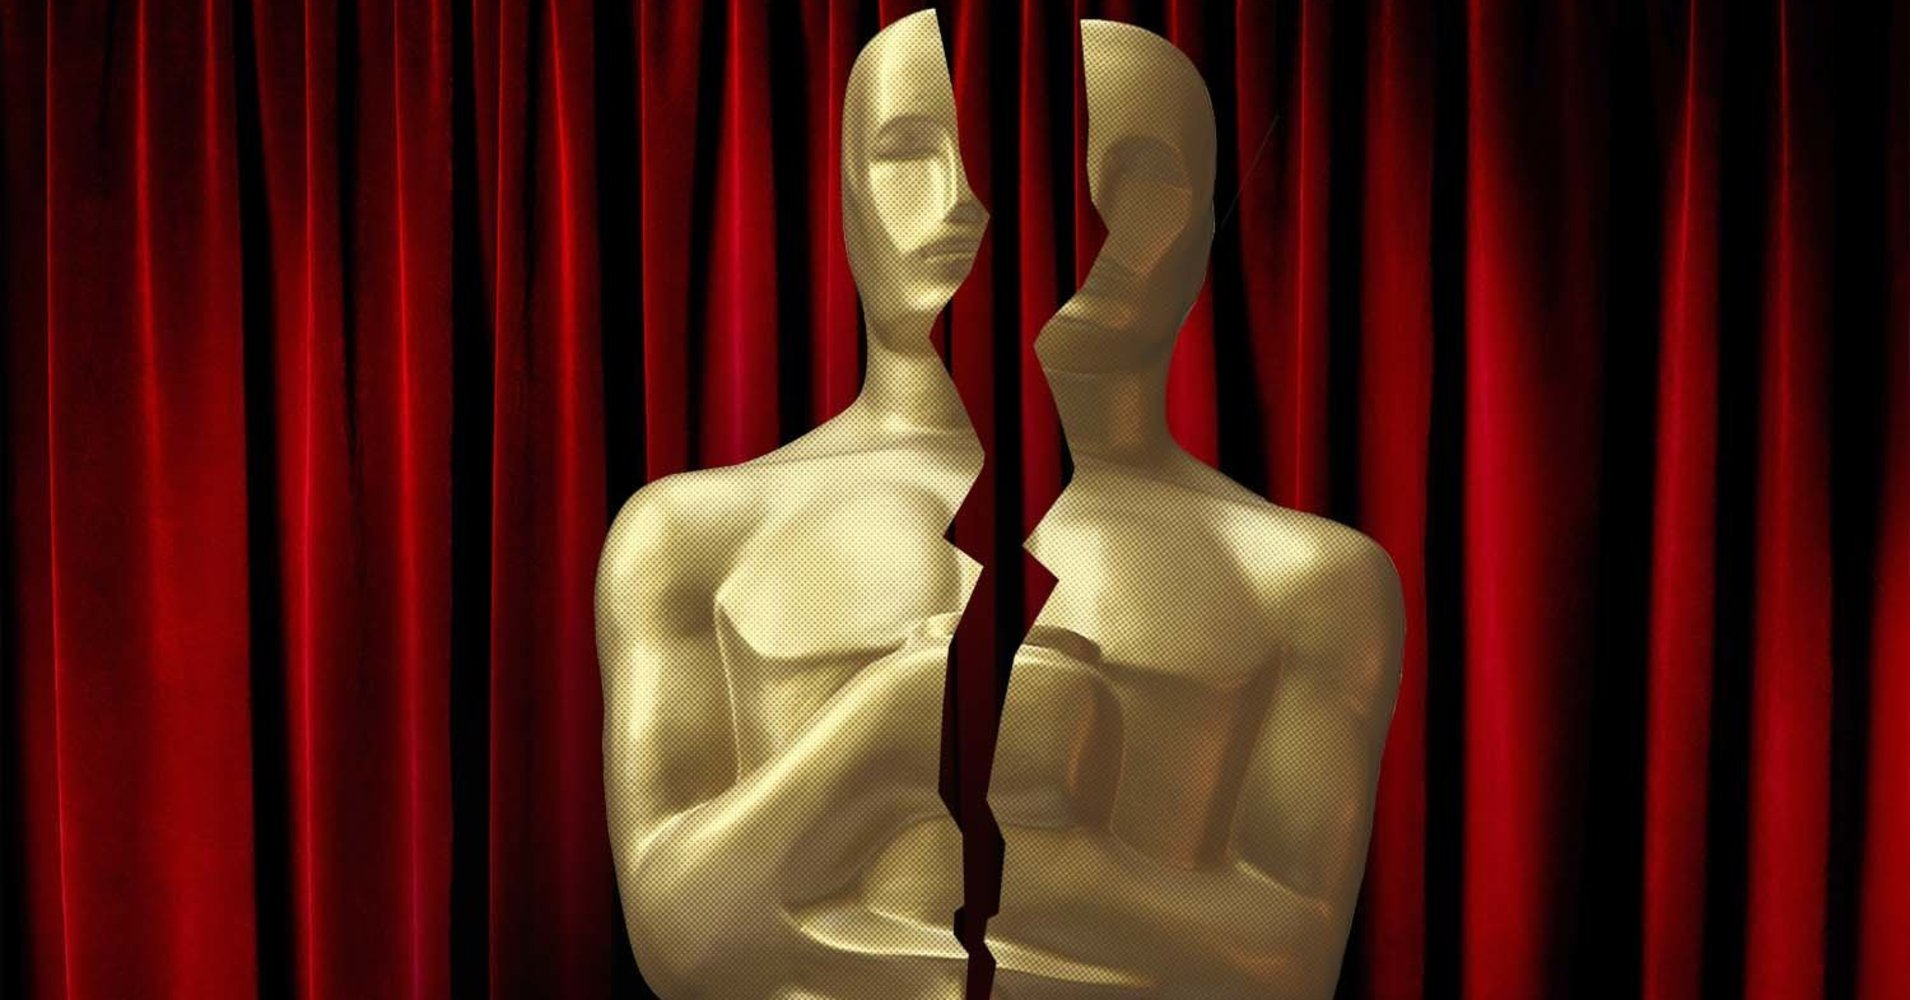 'There'll Be A Revolt': A Change To The Oscars Broadcast Has Hollywood Up In Arms